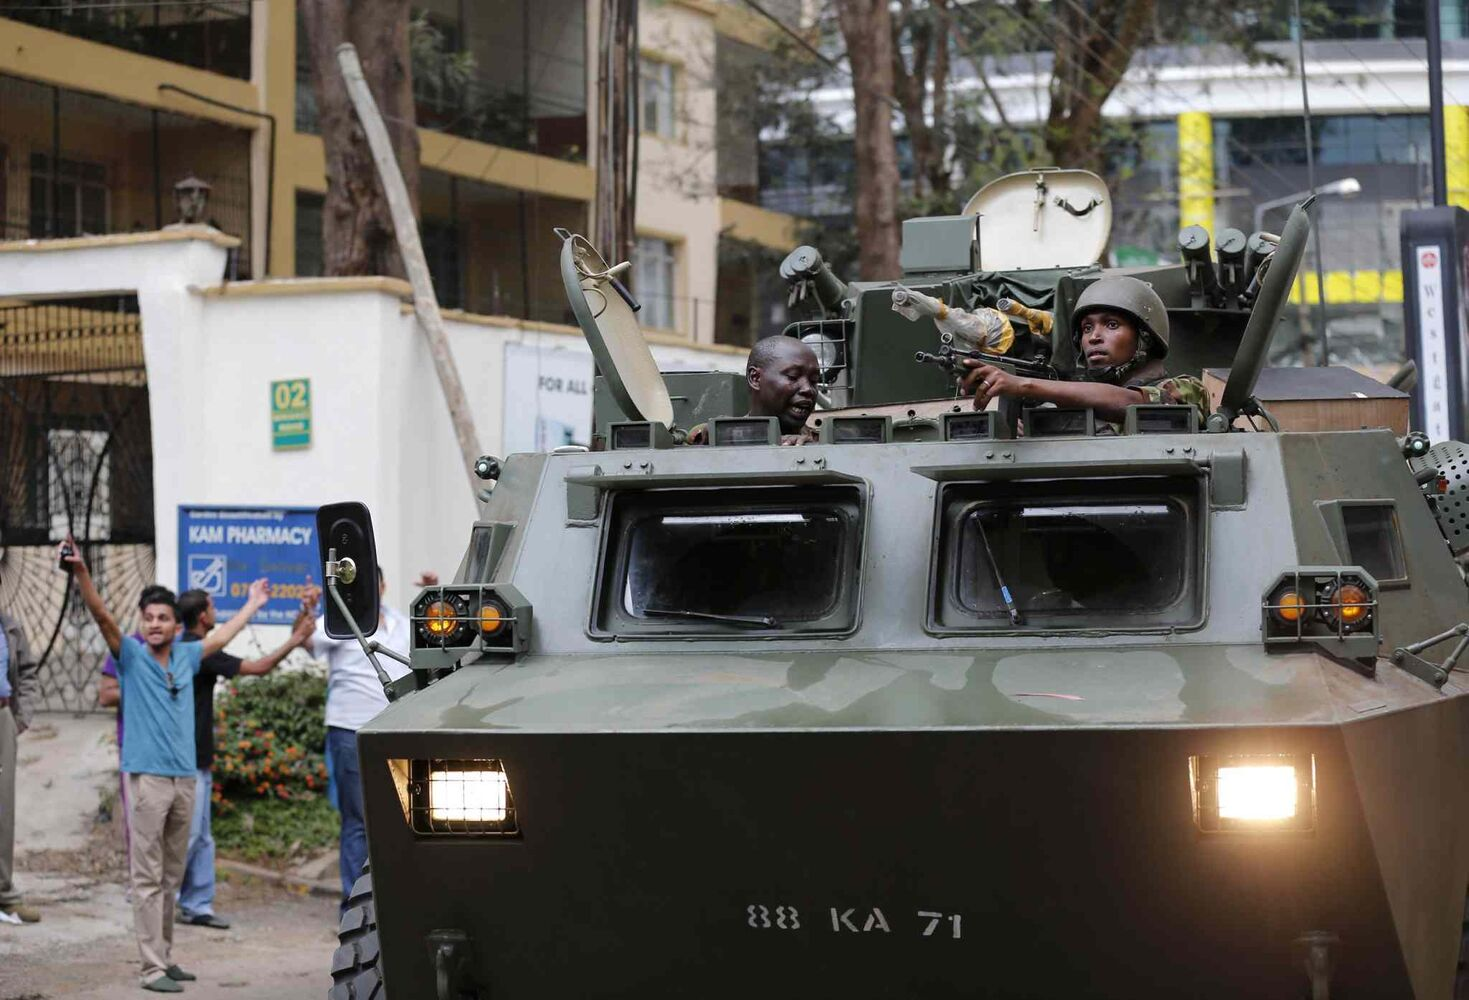 Soldiers arrive at Westgate Mall in Nairobi, Kenya on Saturday. A gun battle inside the shopping centre left at least 39 people dead after gunmen attacked one of the city's most exclusive malls.